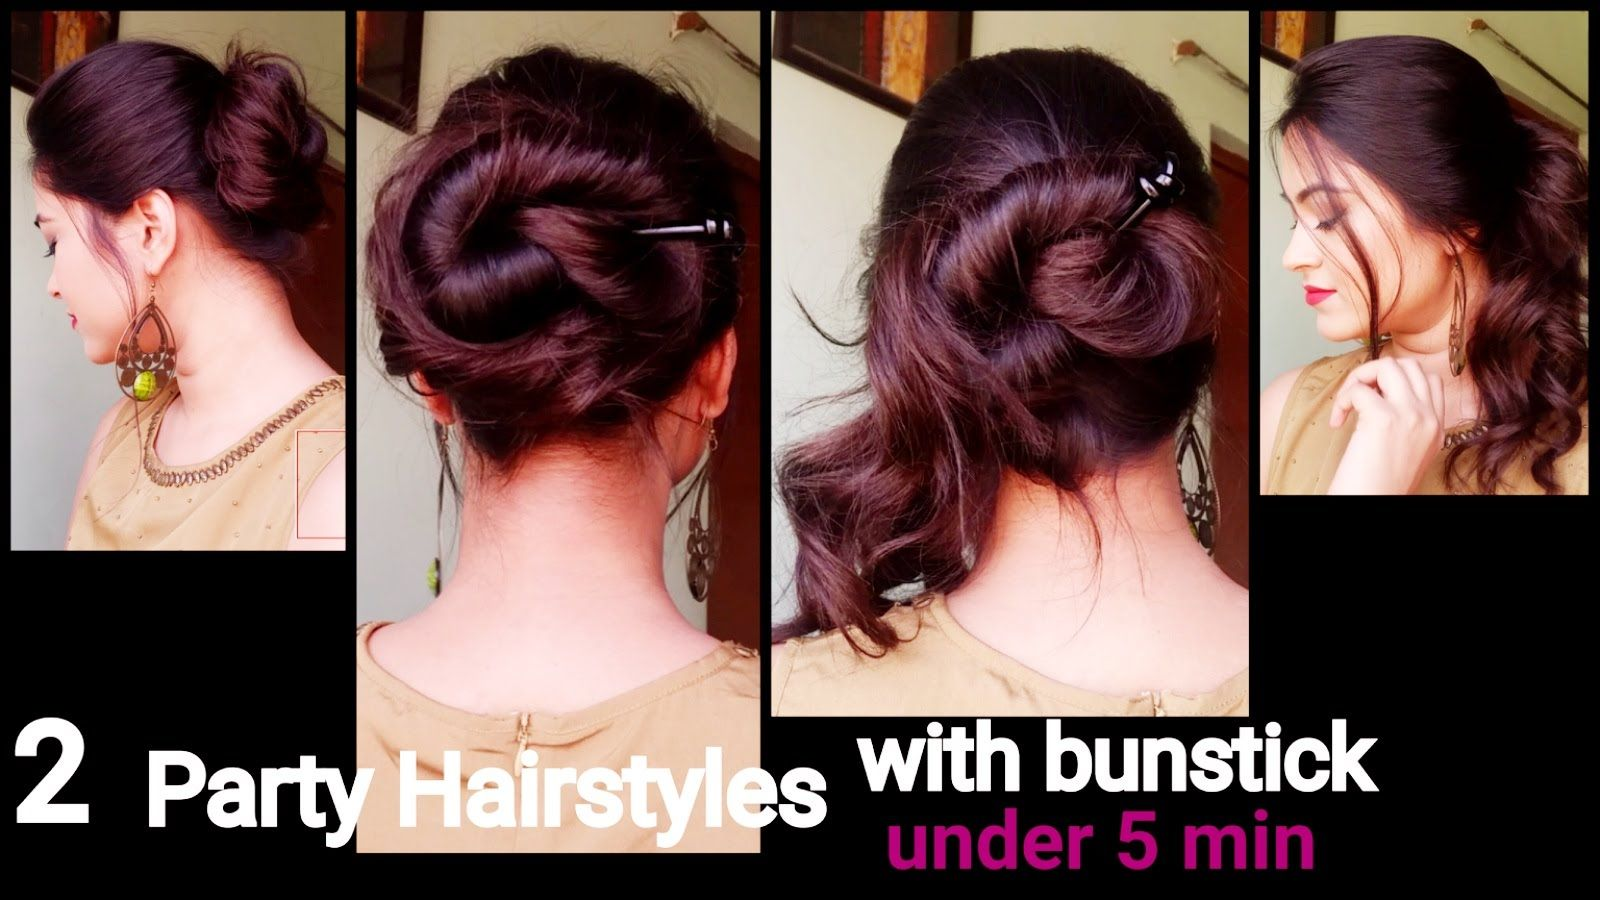 2 Party Hairstyles For Long Hair With Bunstick Messy Bun Indian Hairst Party Hairstyles For Long Hair Easy Hairstyles Quick Easy Hairstyles